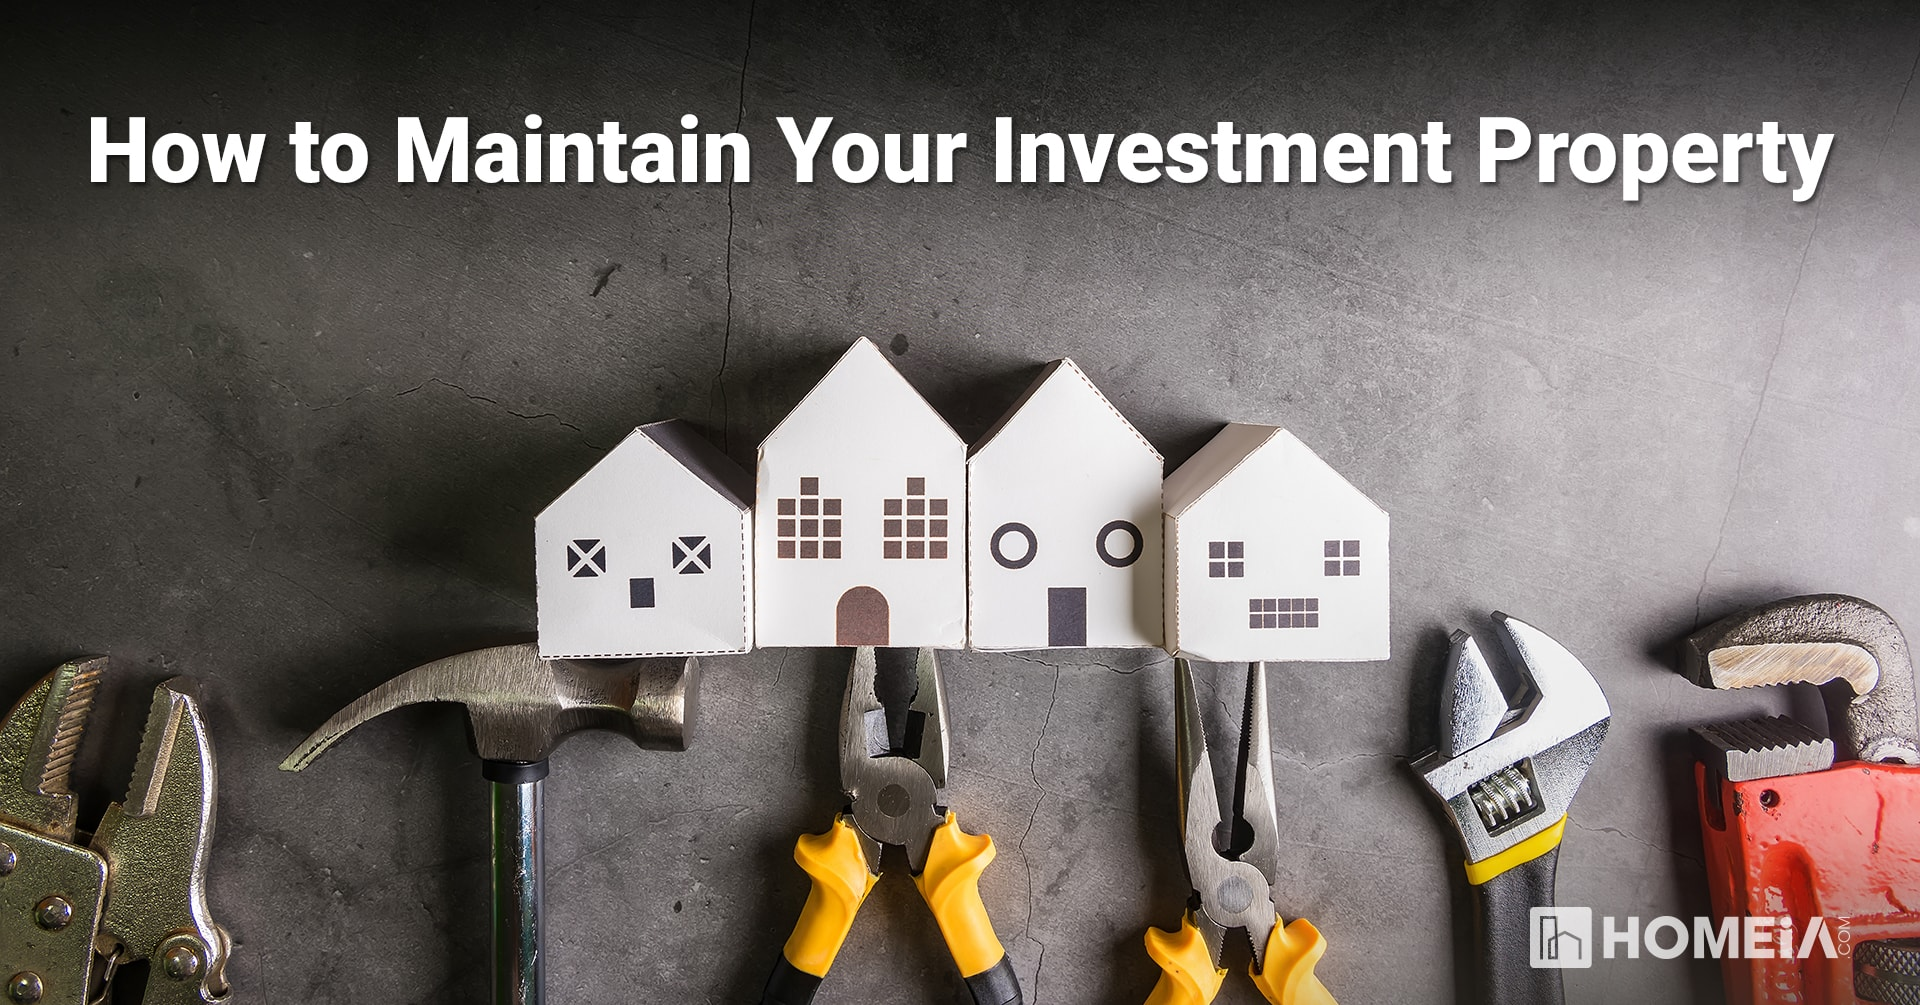 How to Maintain Your Investment Property